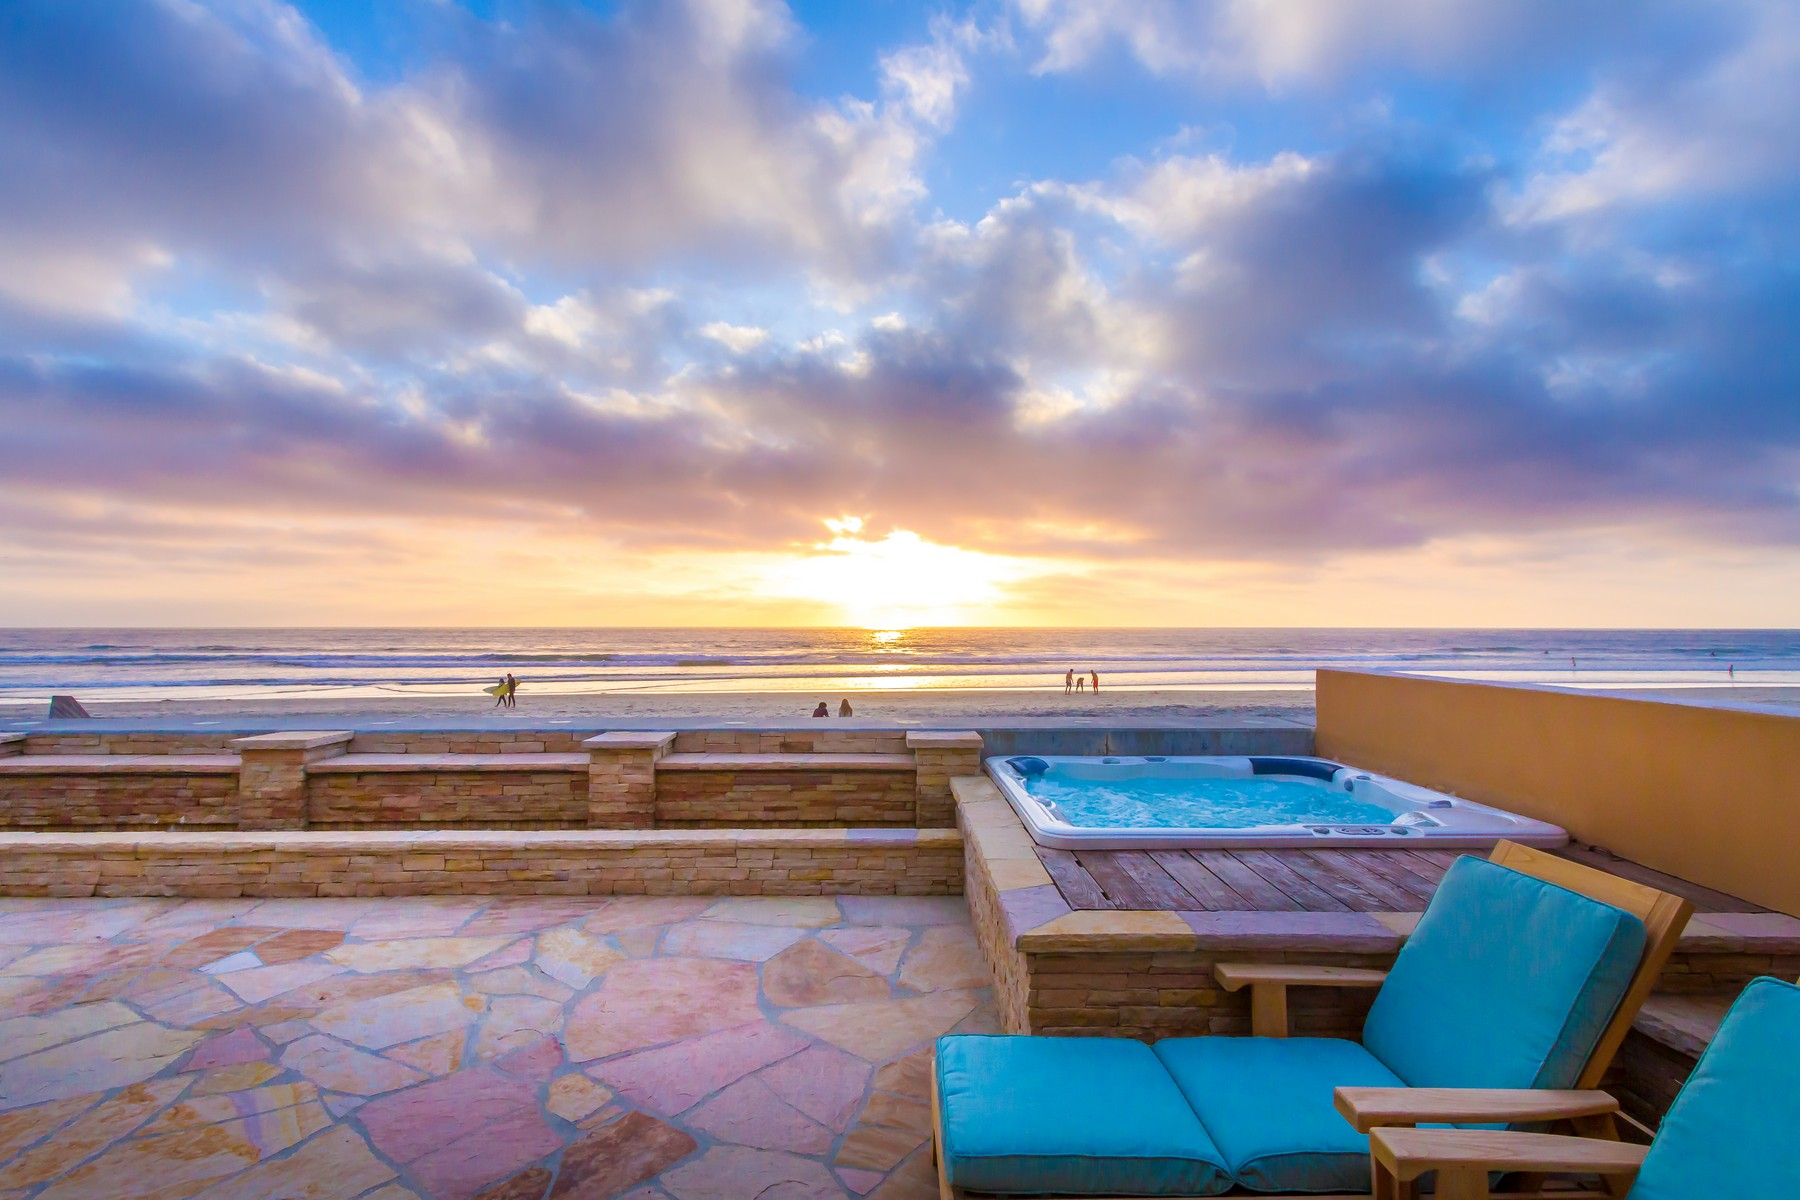 Single Family Home for Sale at 2016 Ocean Front Drive Del Mar, California 92014 United States